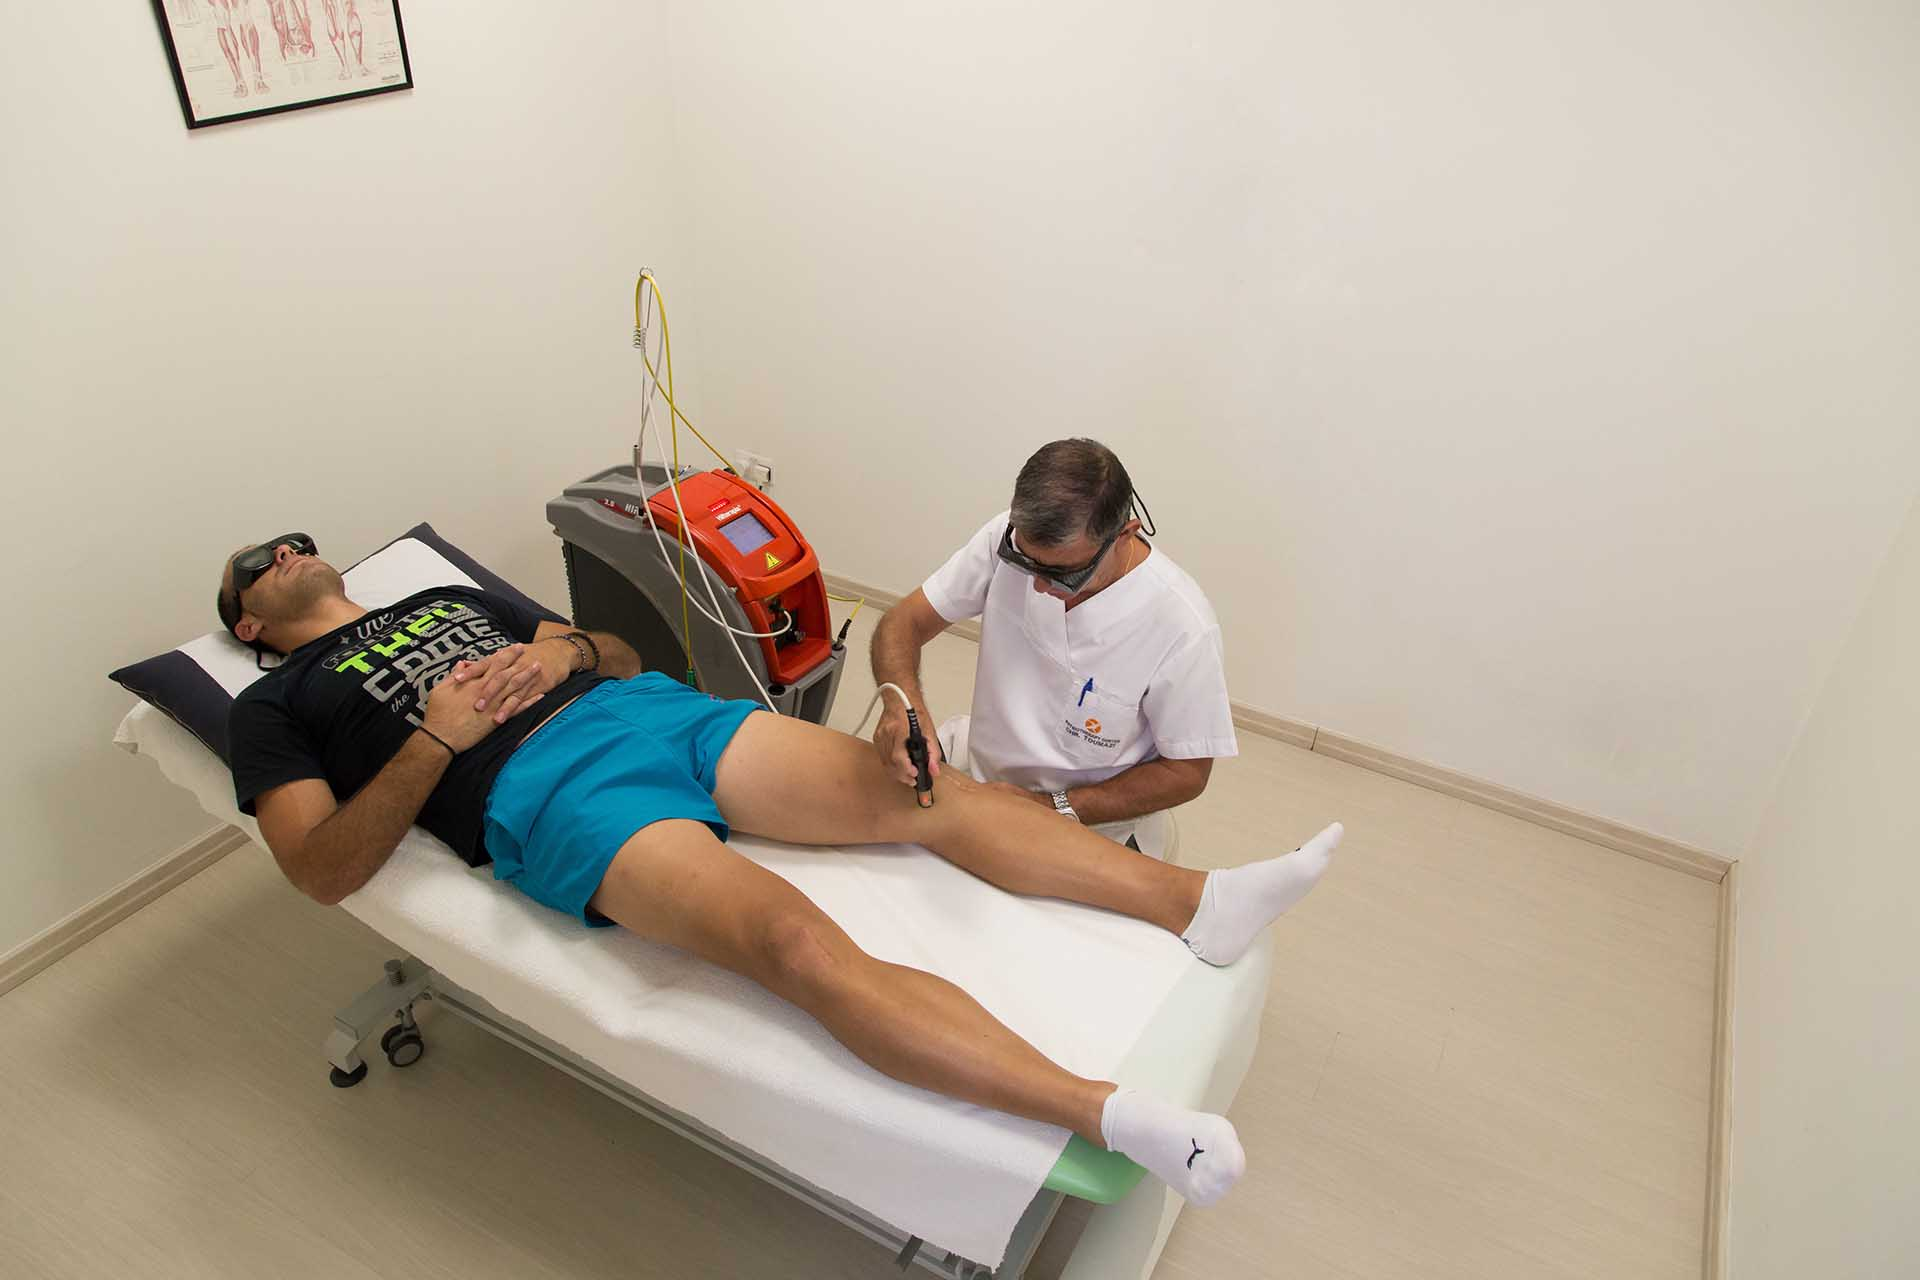 Toumazi Physio Gallery - Physiotherapy laser therapy